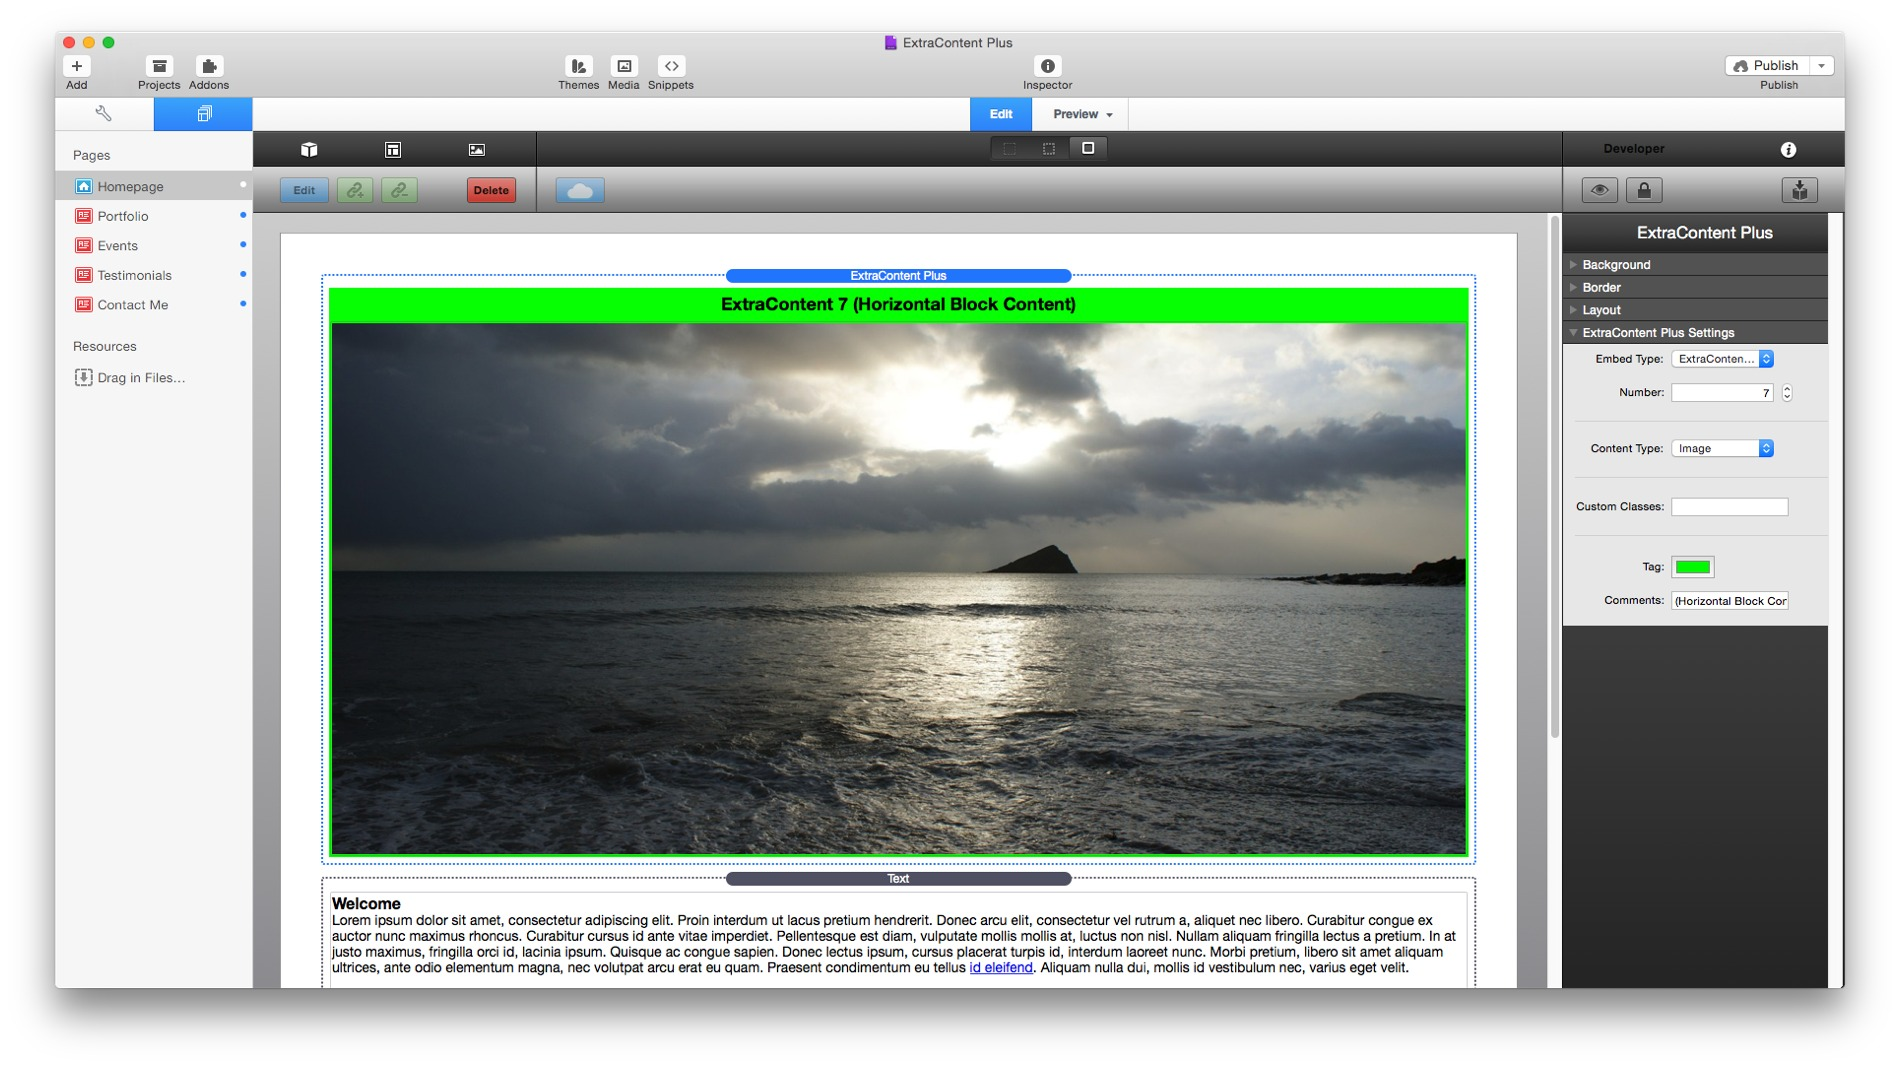 Picture showing the ExtraContent Plus stack in RapidWeaver edit mode